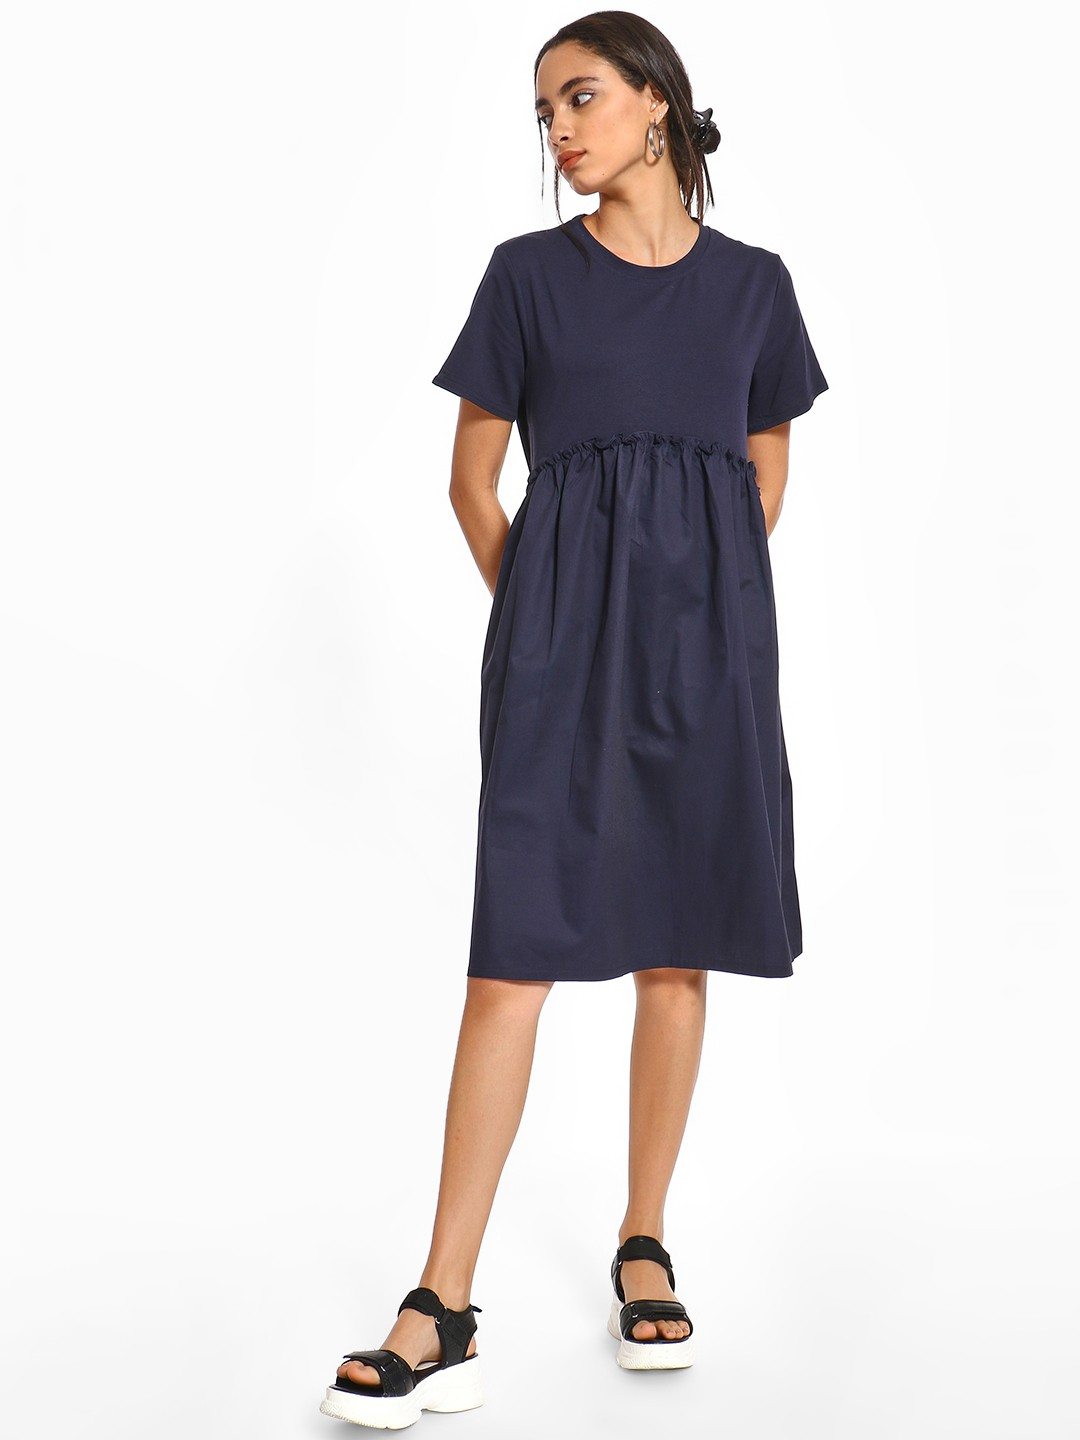 Origami Lily Indigo Twofer Ruffled Midi Dress 1